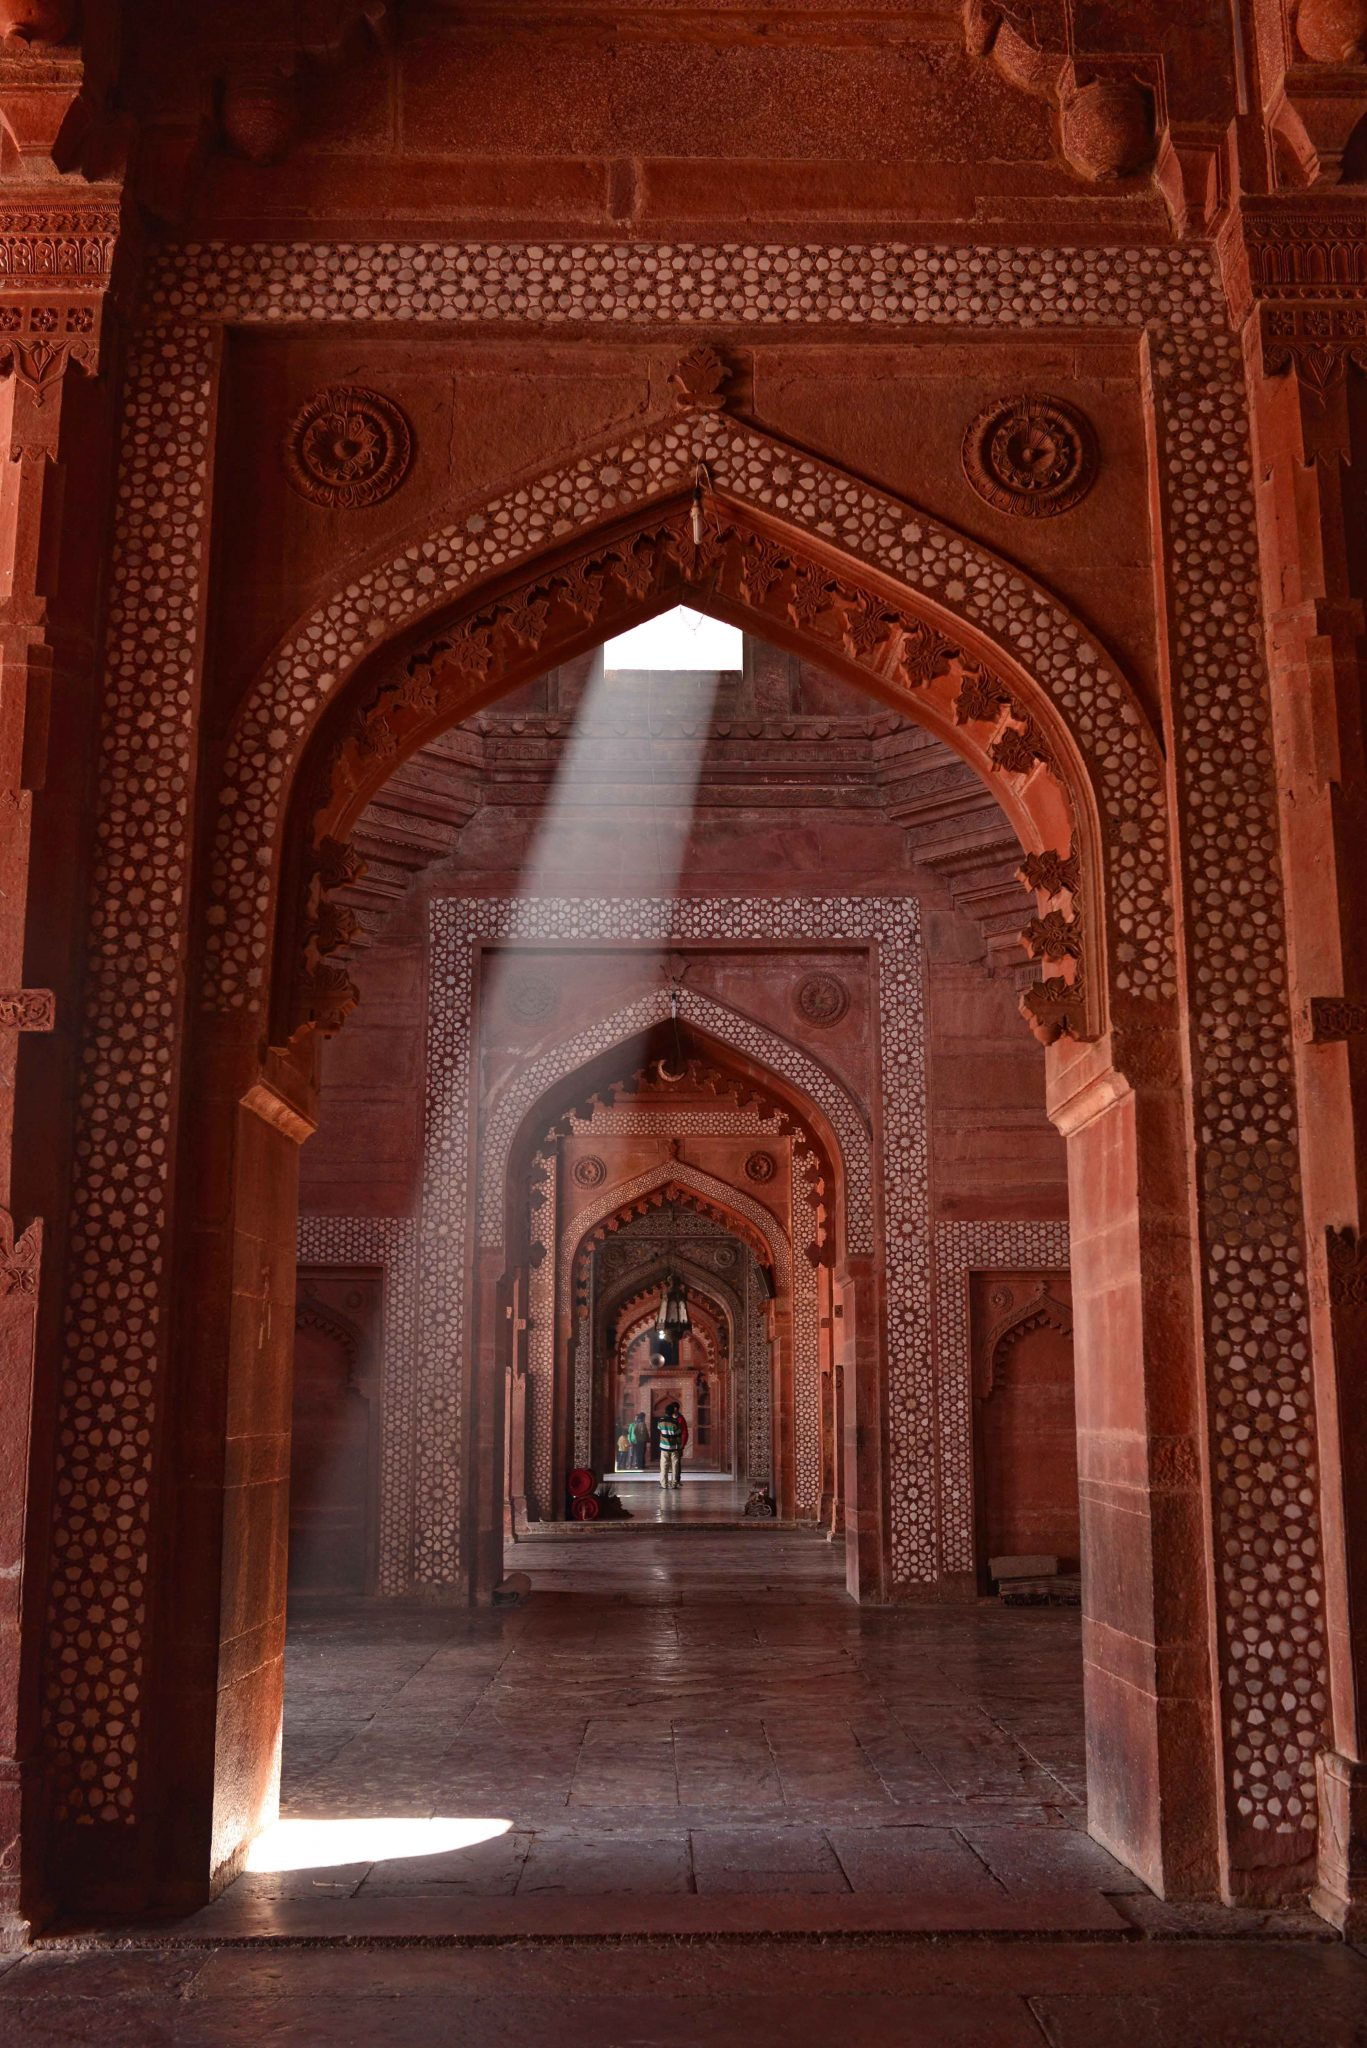 A mystical moment at Jama Masjid, Fatehpur Sikri